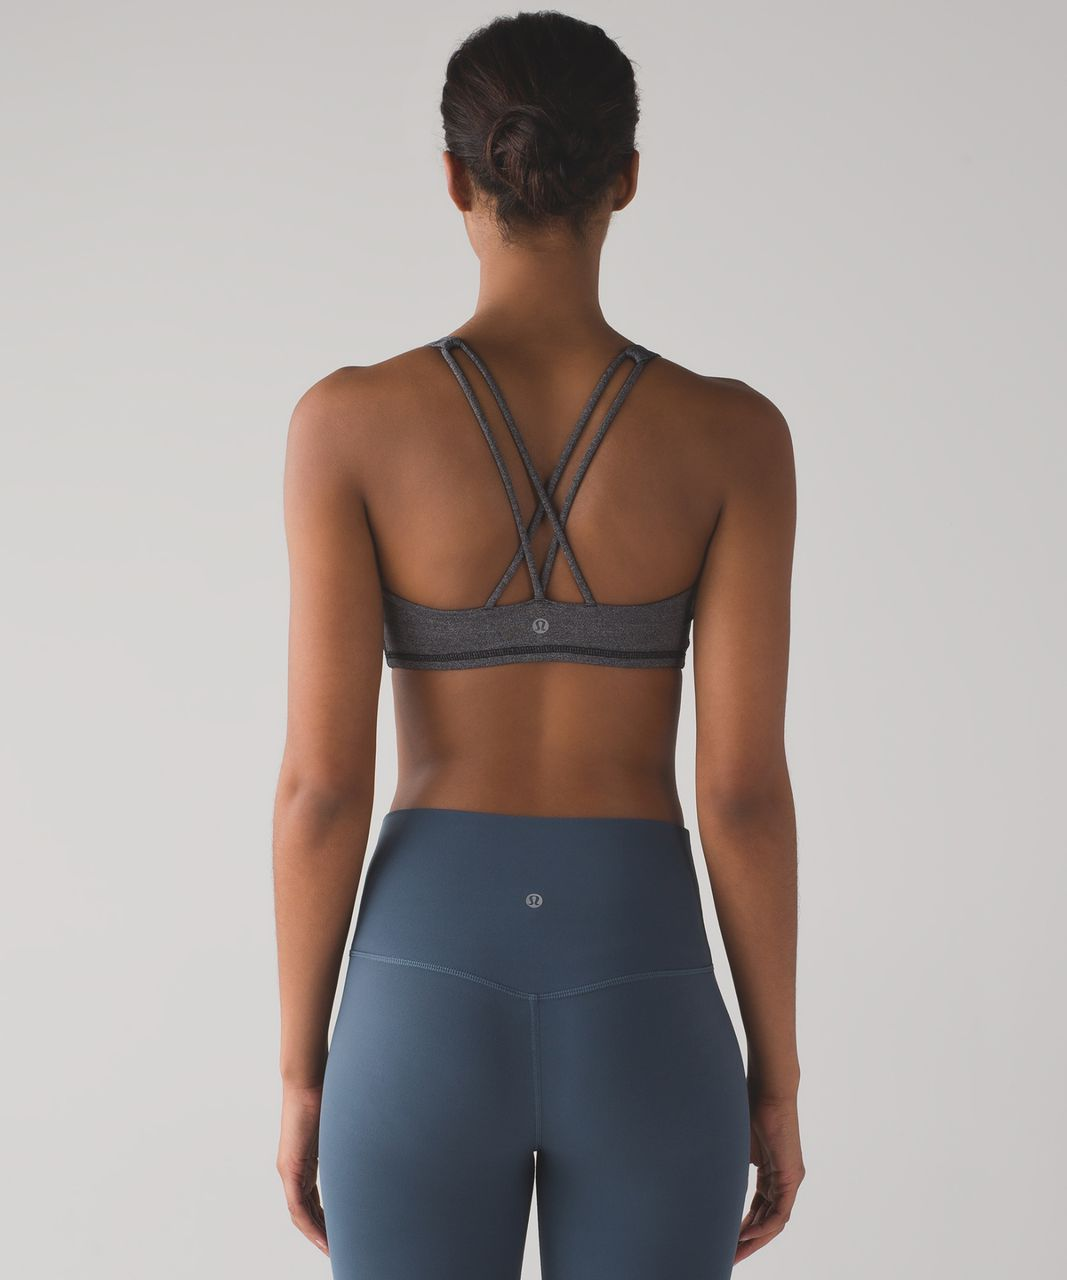 Lululemon Free To Be Bra - Heathered Black